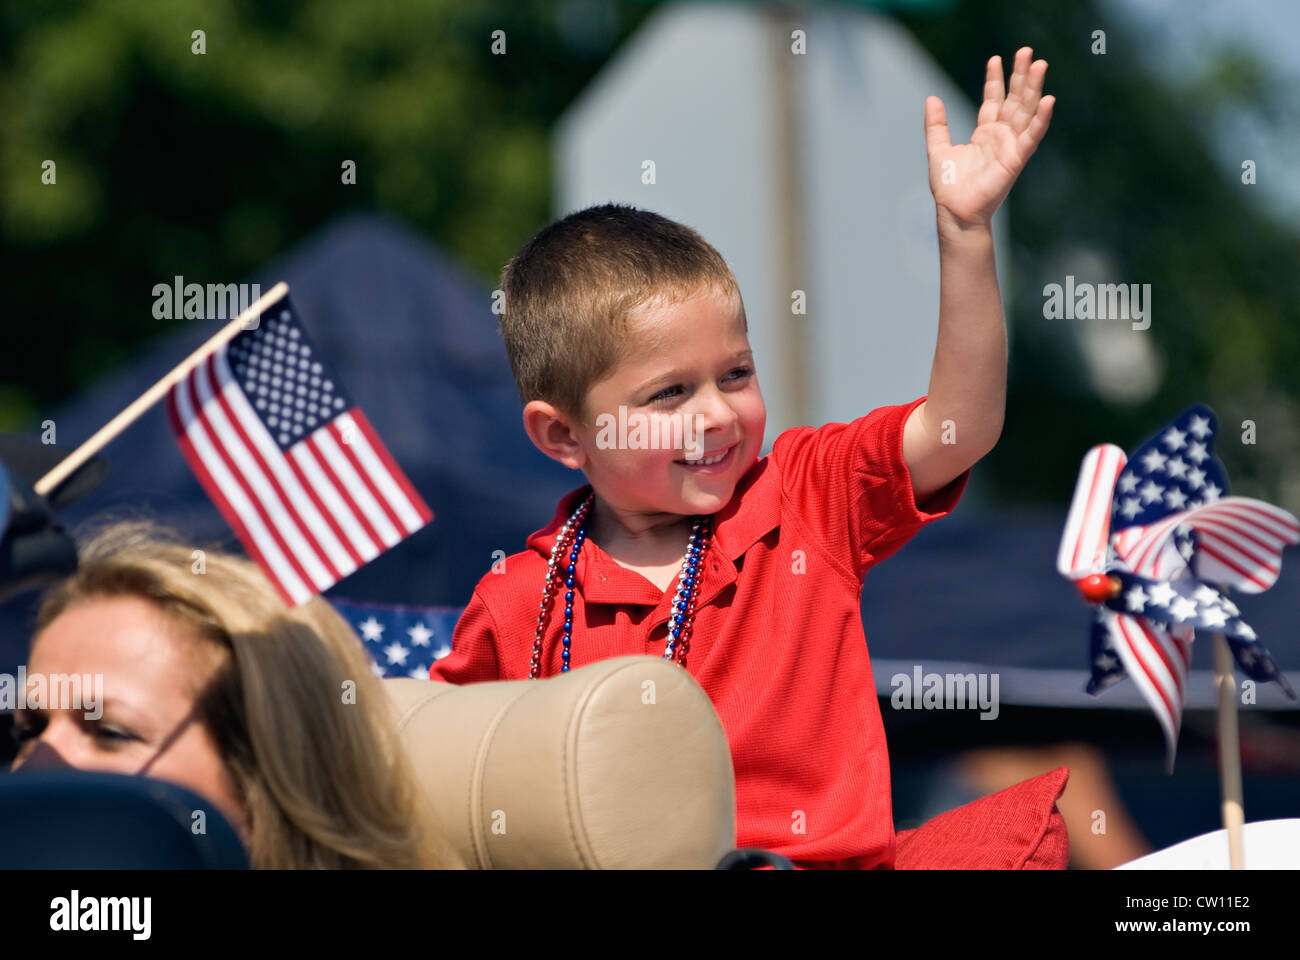 Prince Candidate Waving to Crowd in Independence Day Parade in New Pekin, Indiana - Stock Image